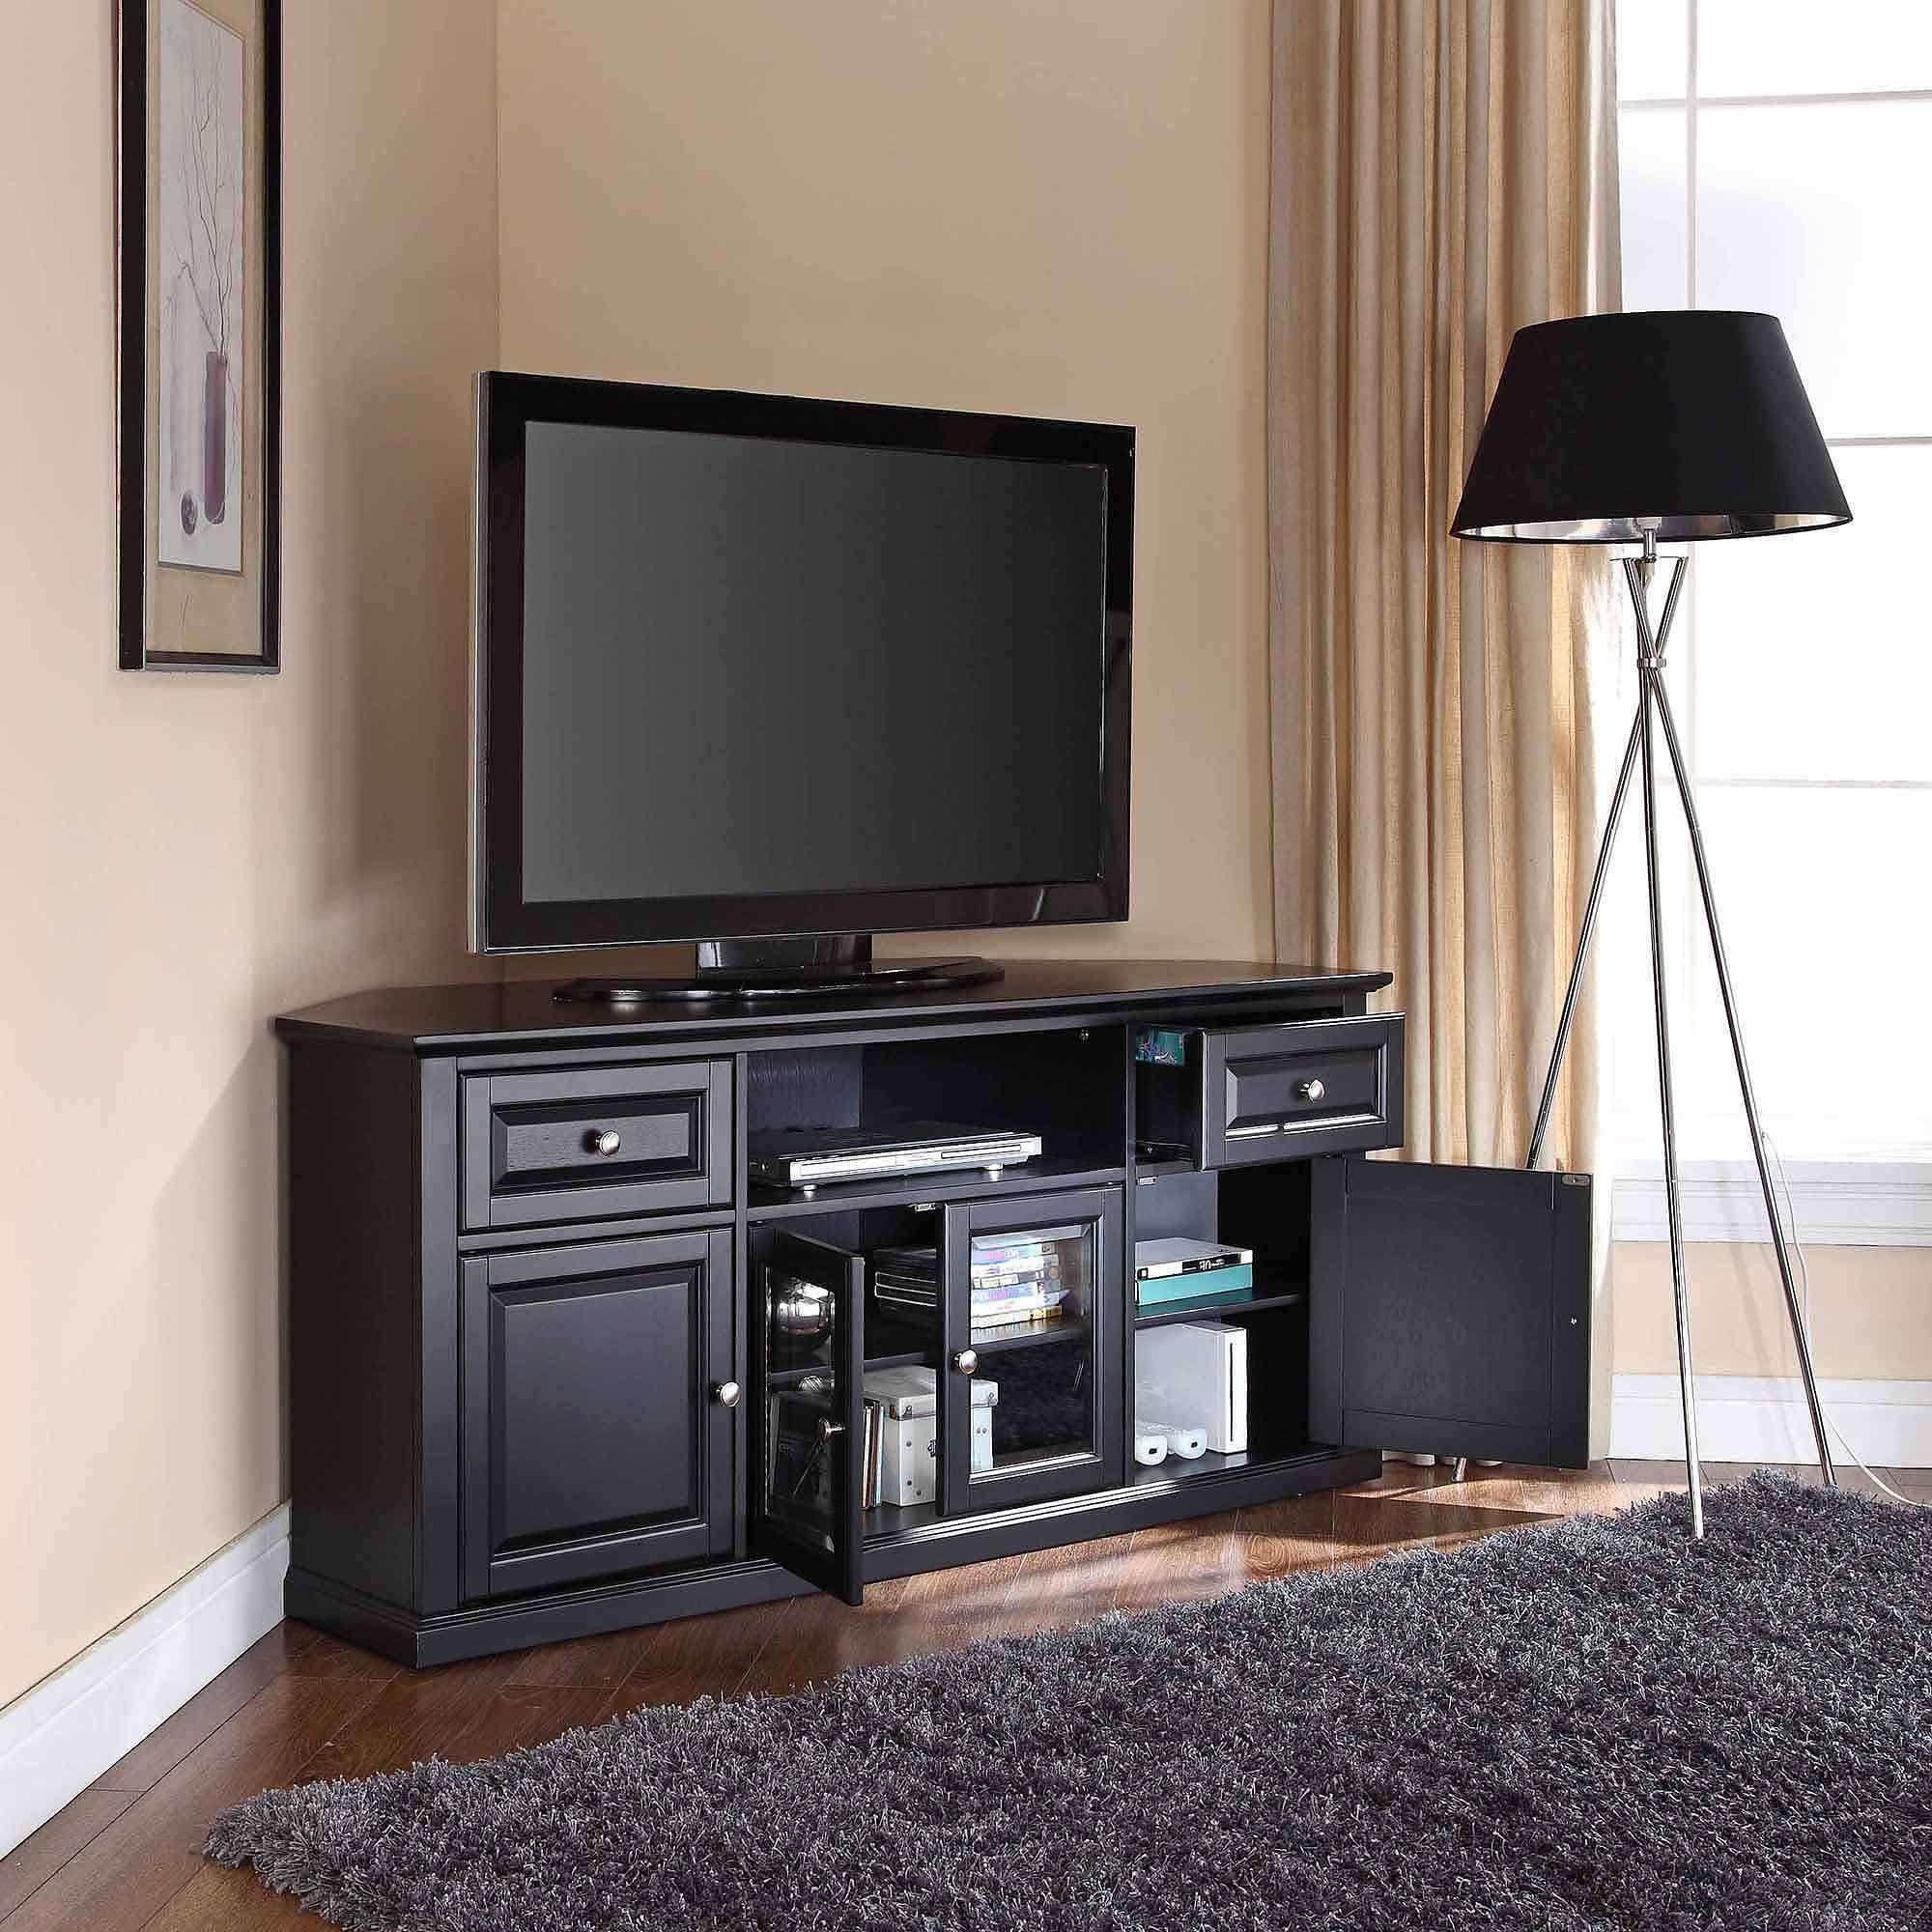 """Crosley Furniture Corner Tv Stand For Tvs Up To 60"""" – Walmart In Corner 55 Inch Tv Stands (View 6 of 15)"""